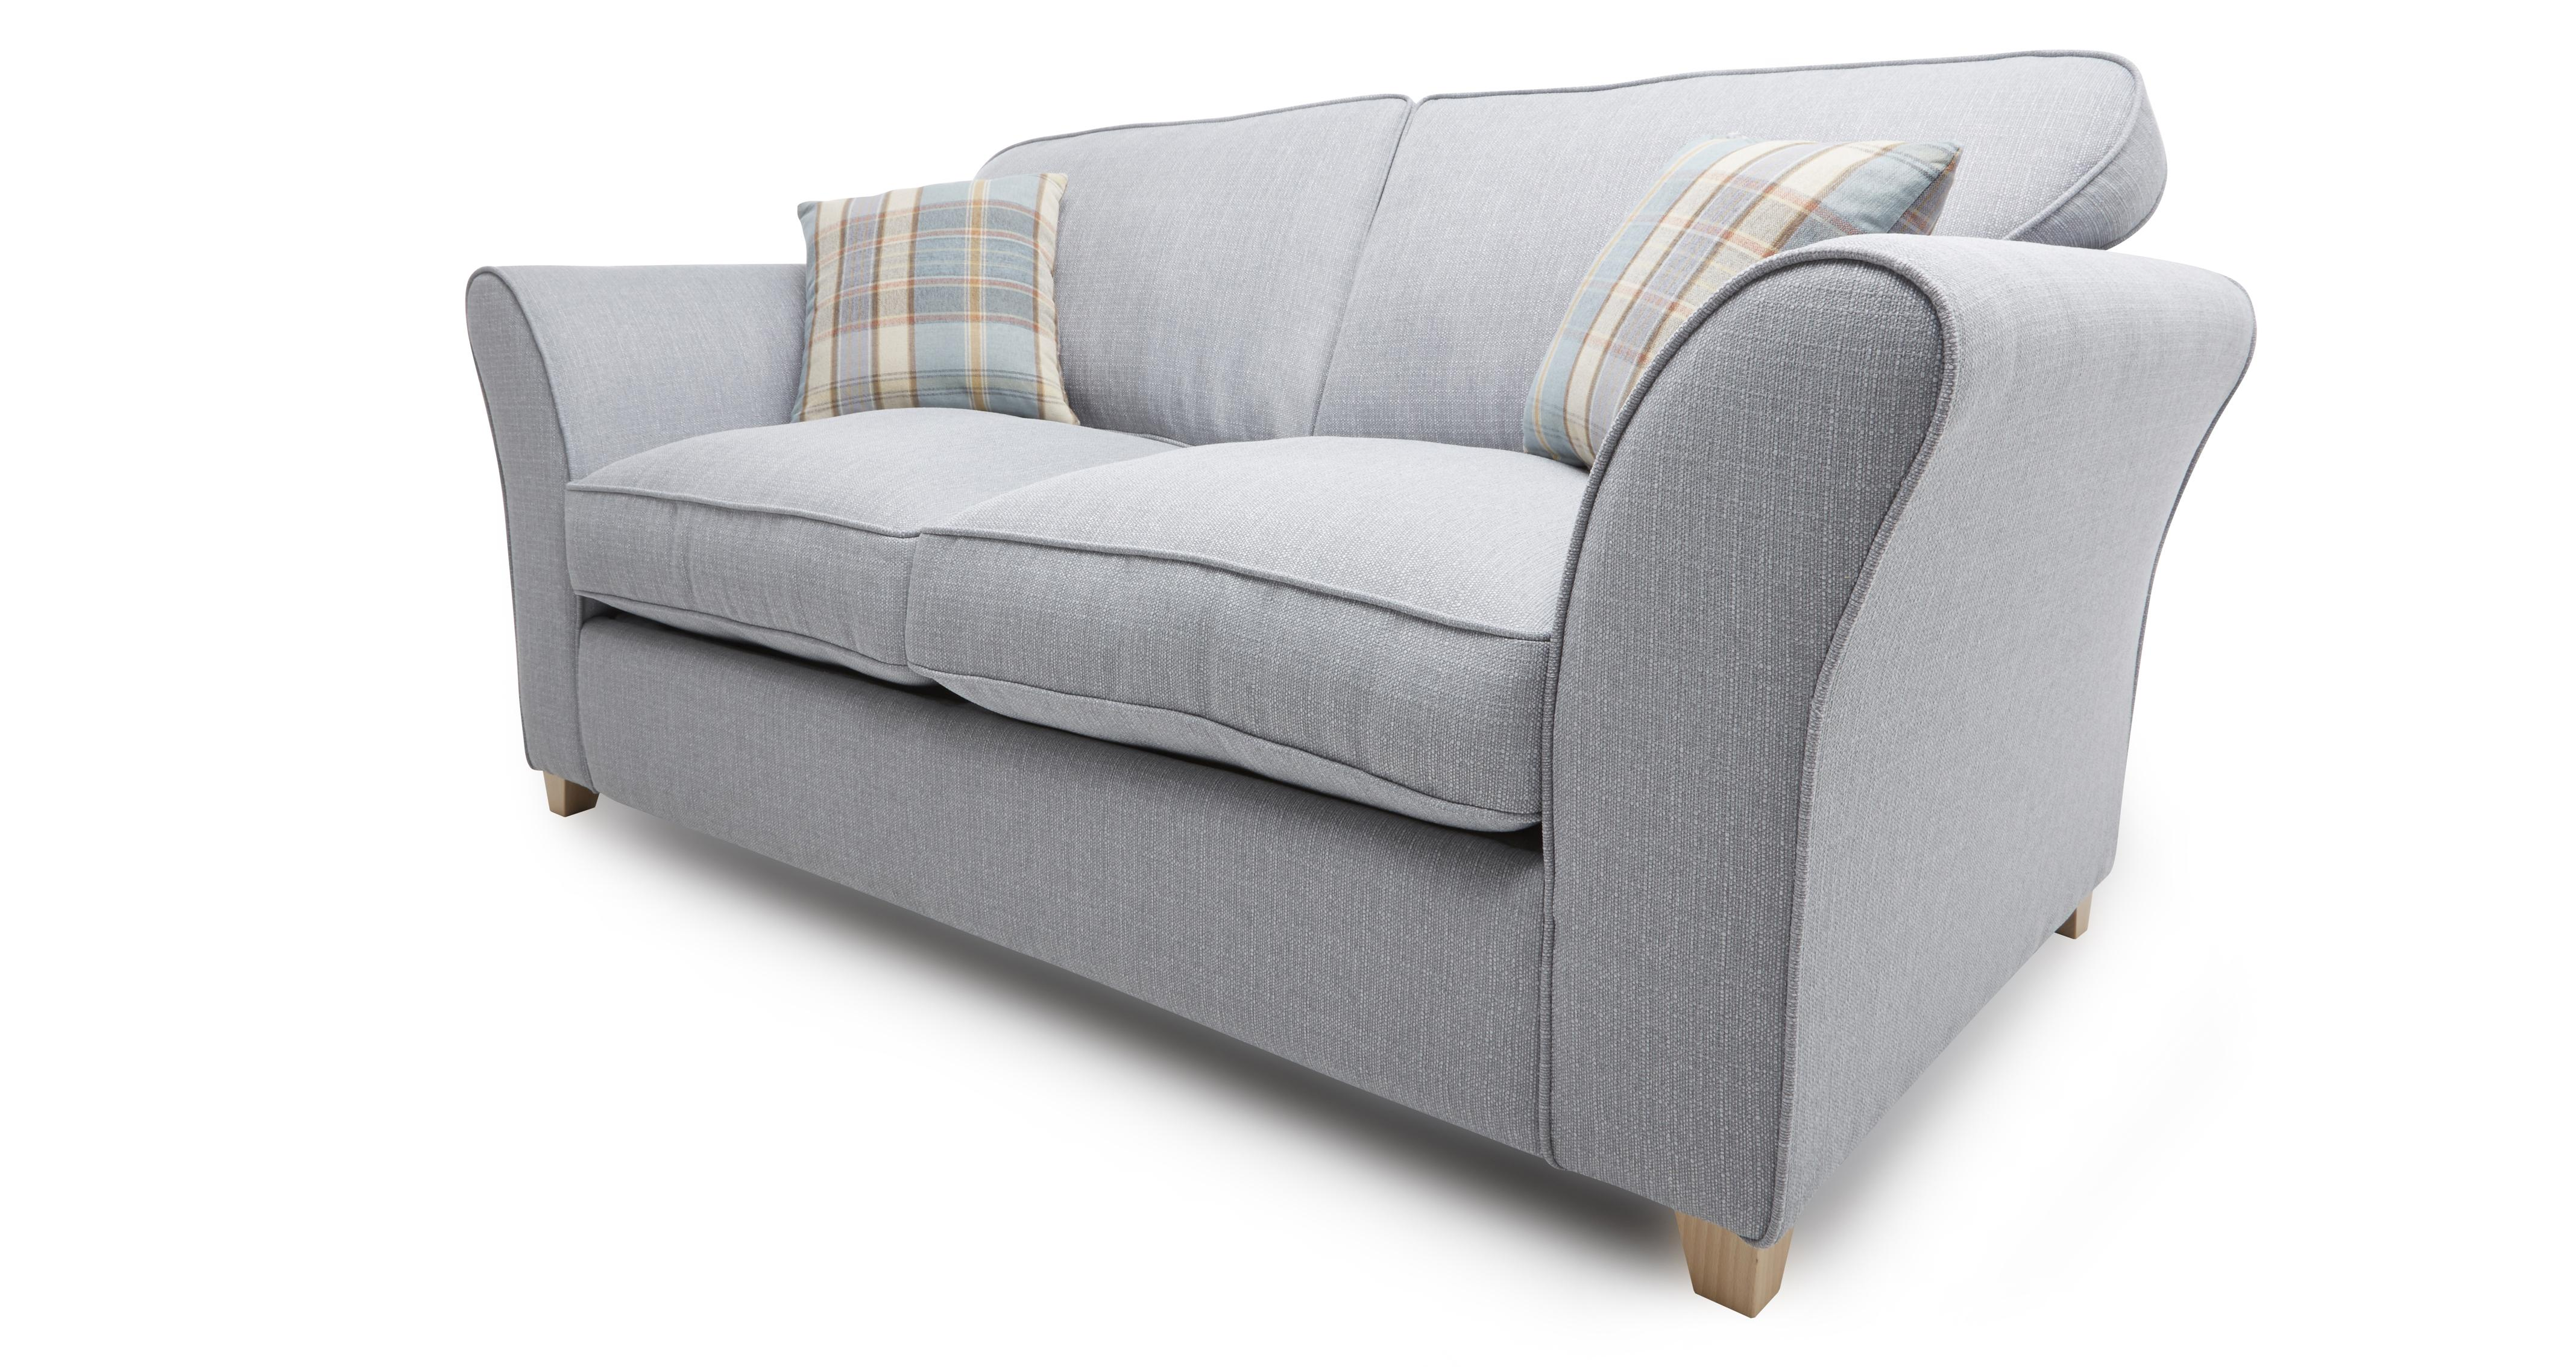 how to wash dfs sofa cushions leather with bed pull out brixham blue fabric 2 seater and pattern